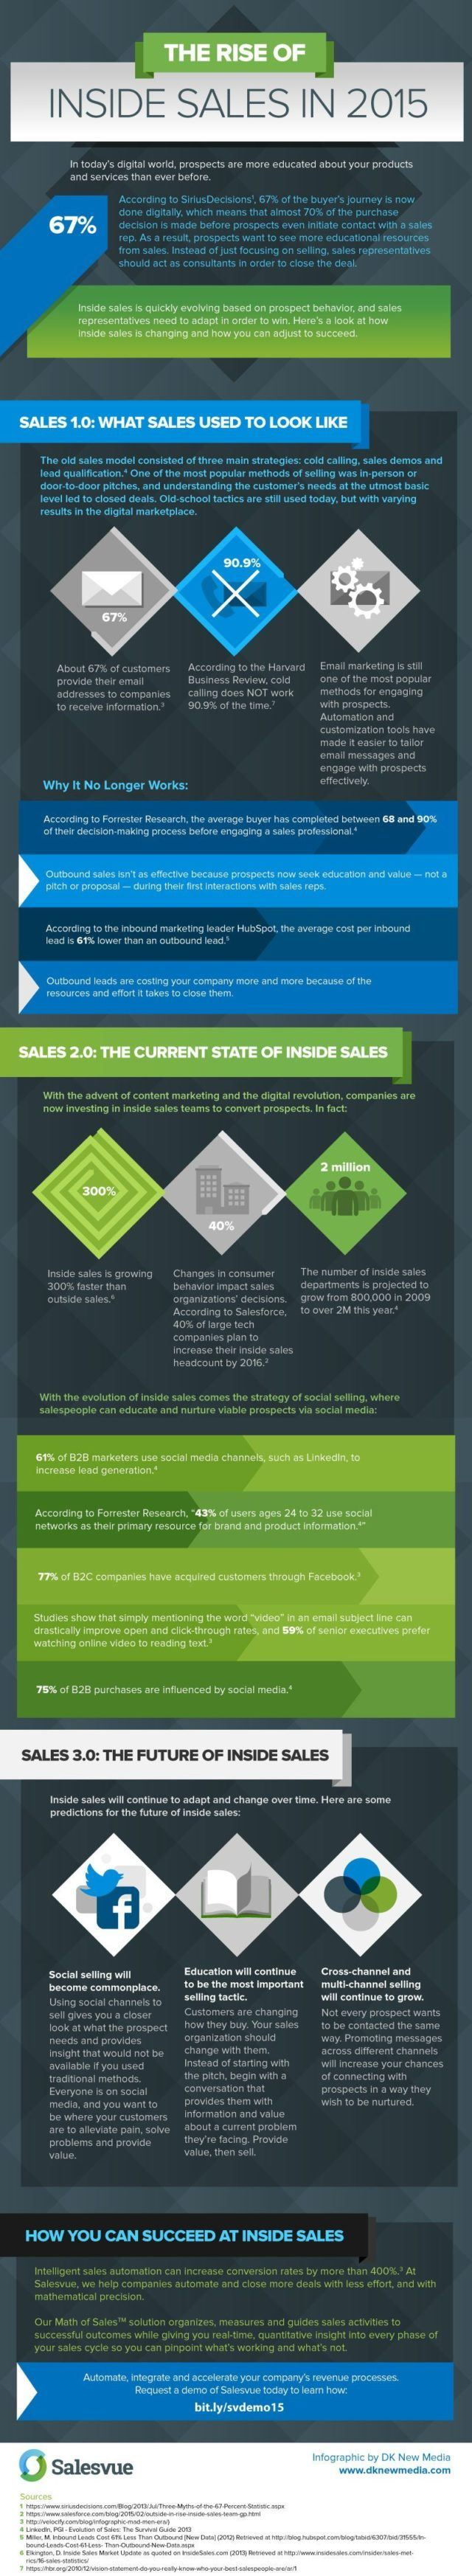 inside-sales-stats-2015-infographic